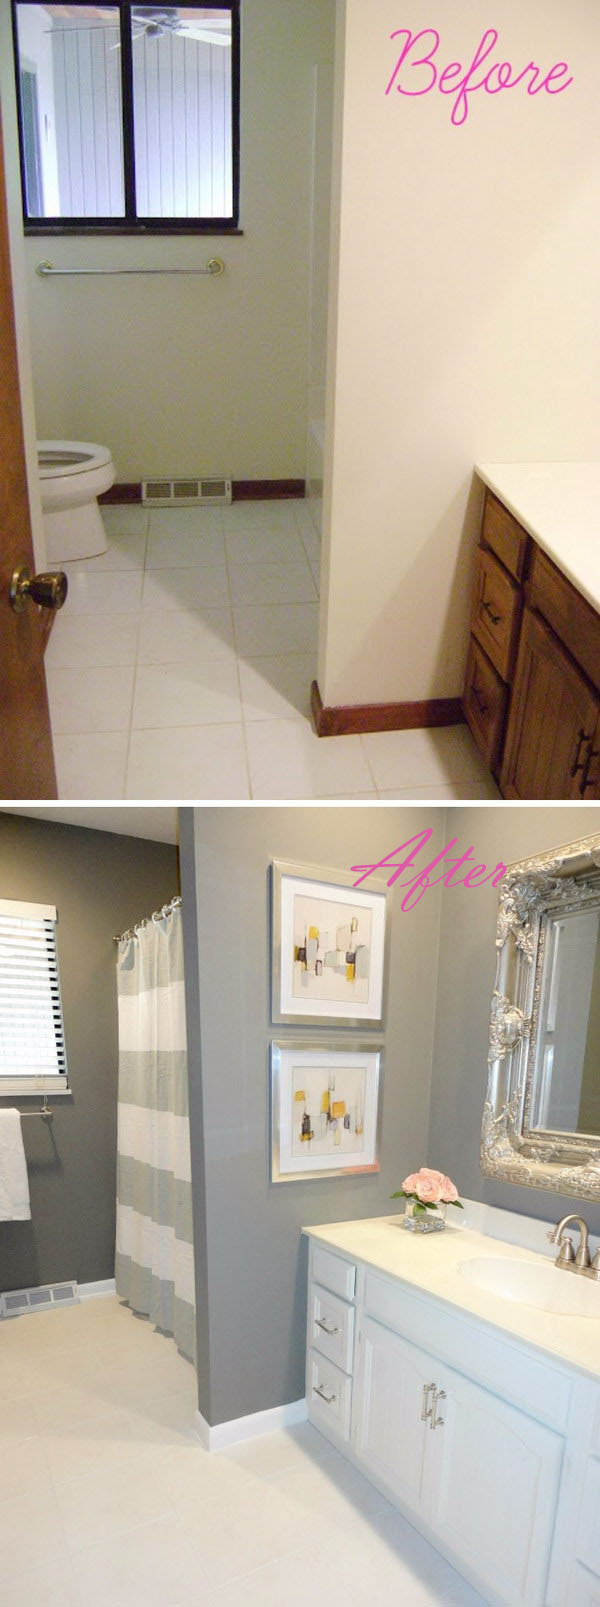 amazing bathroom makeovers - diycraftsguru